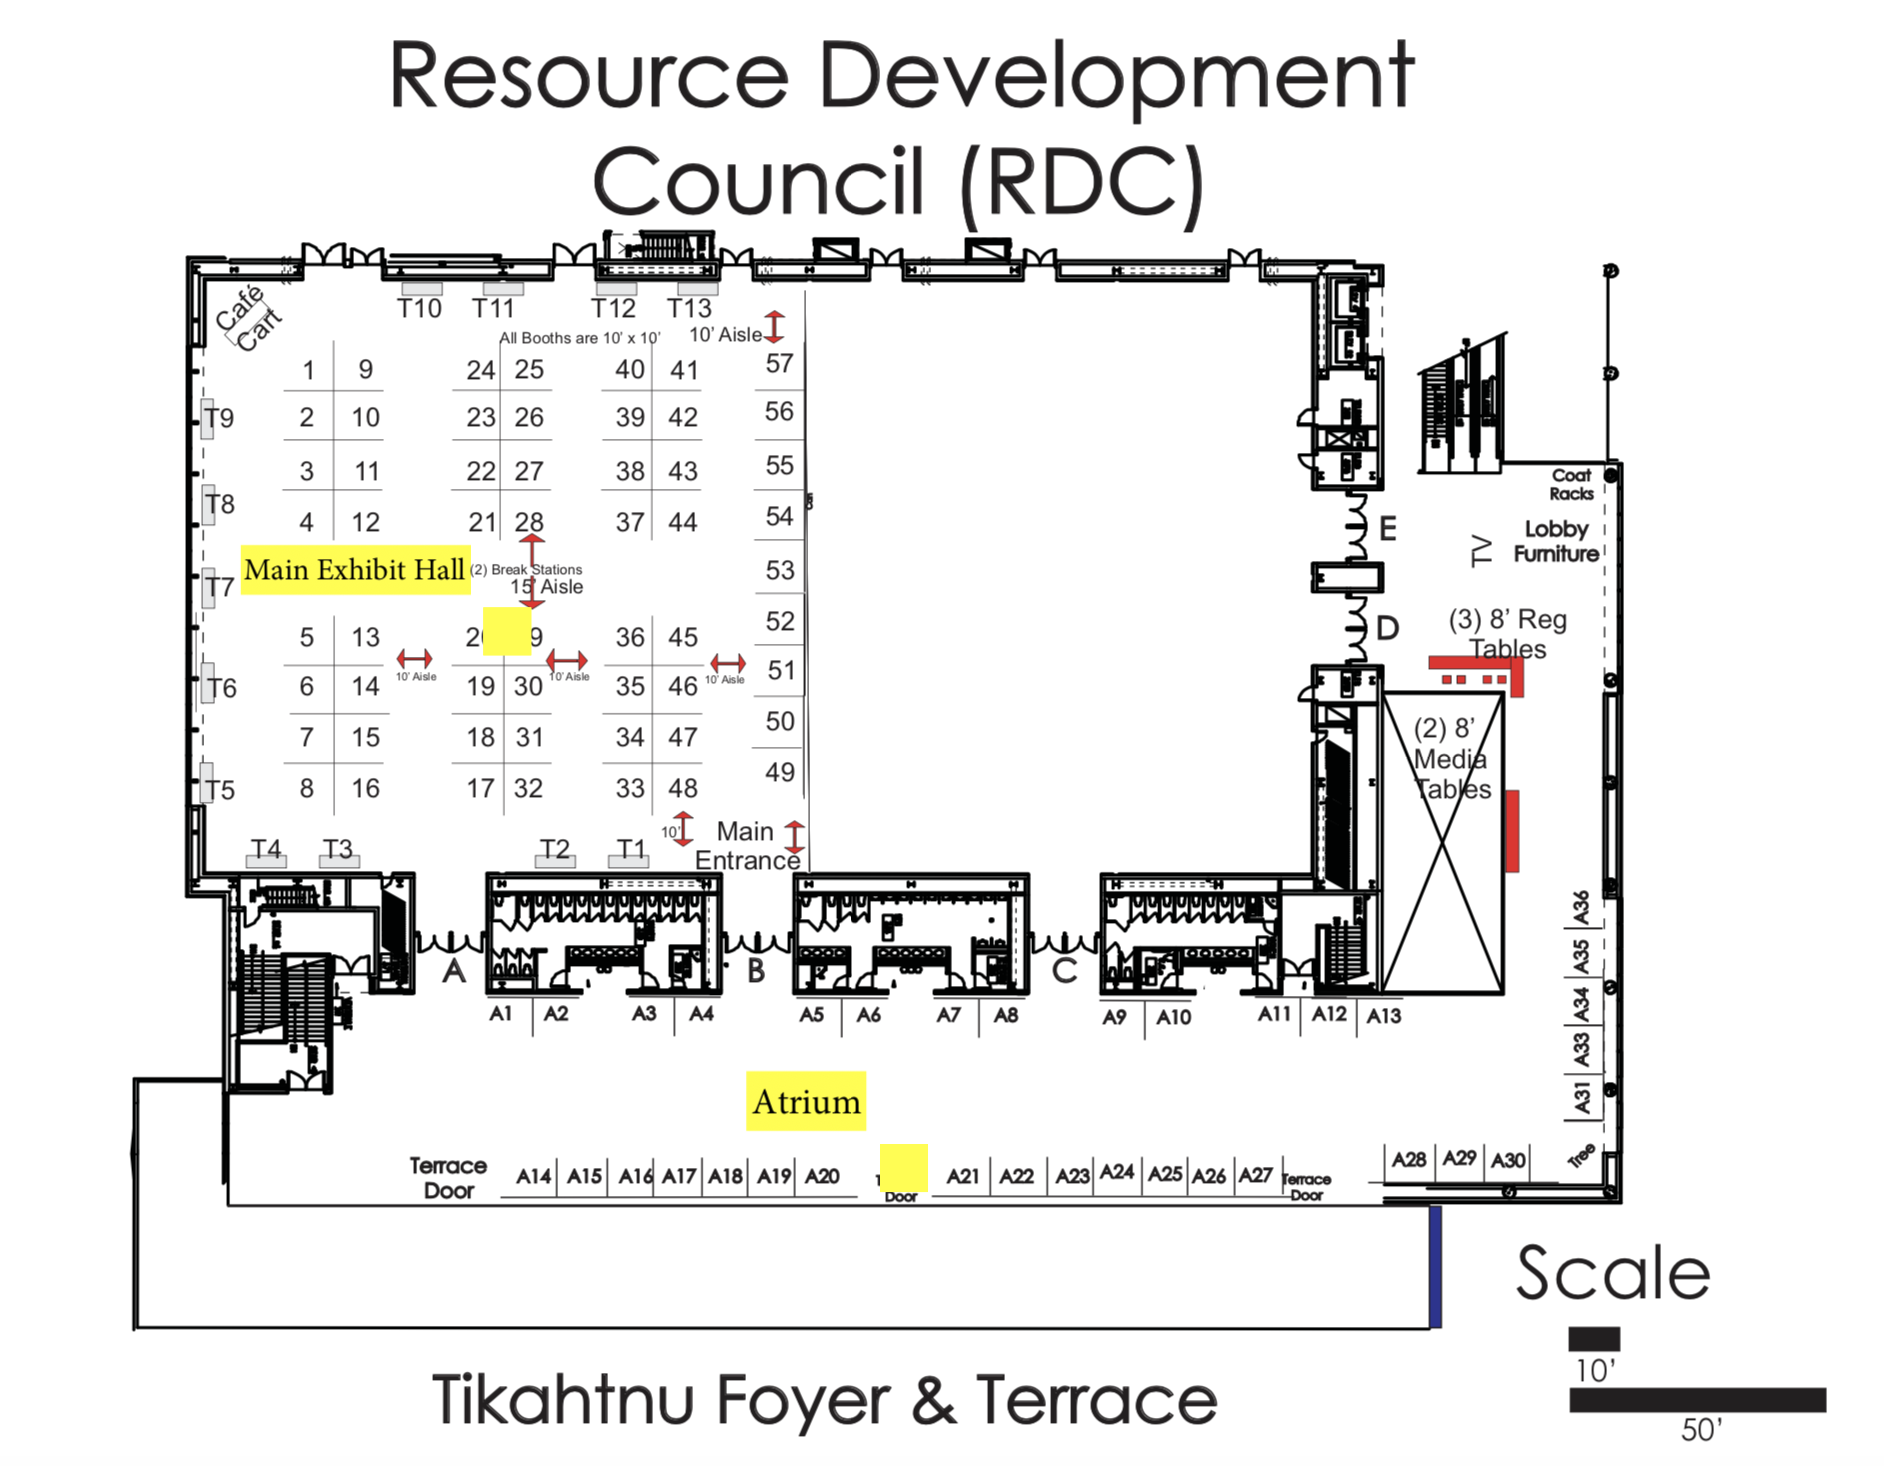 Conference Exhibitor Layout